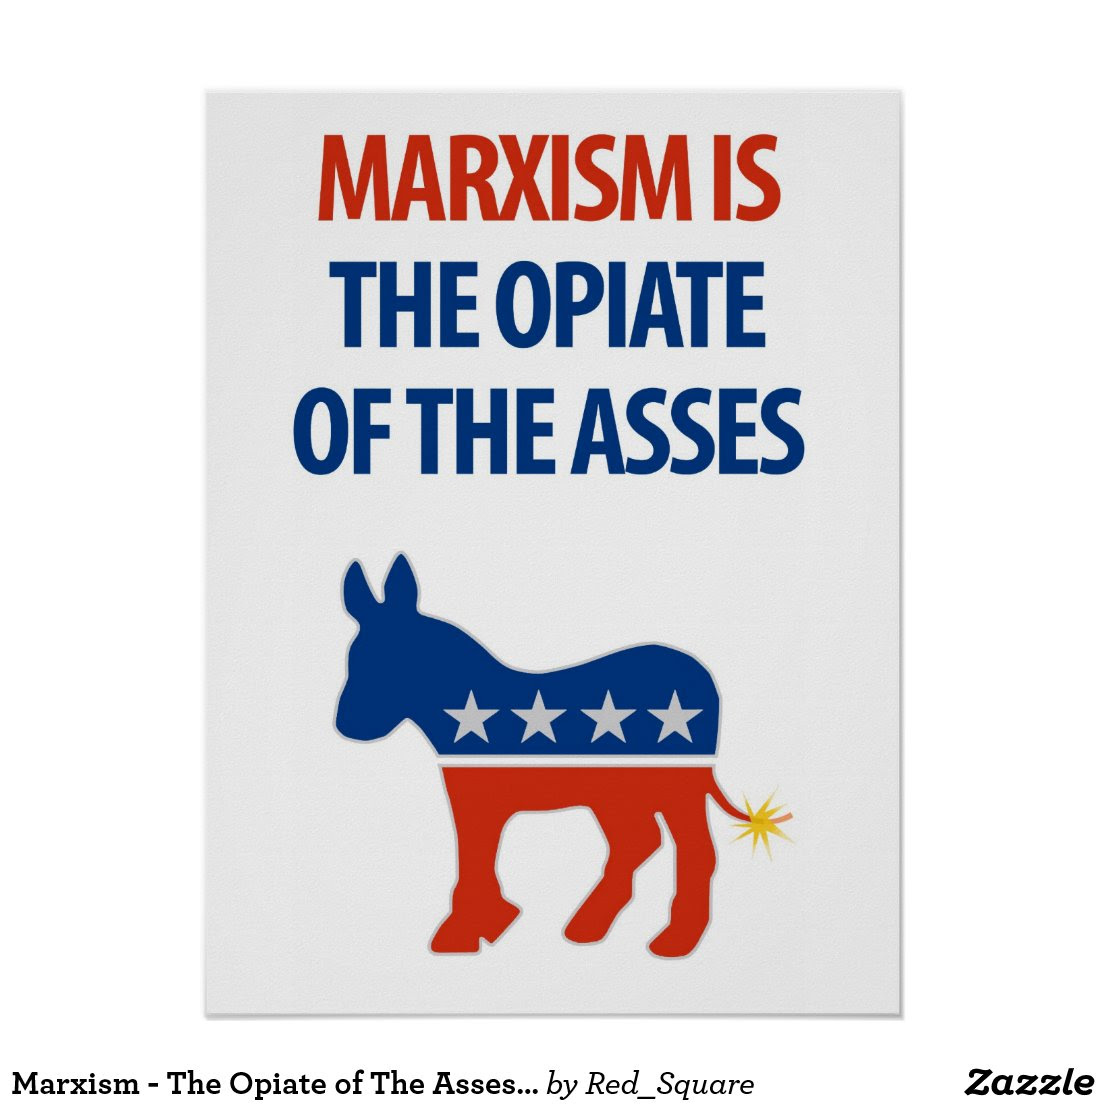 http://rlv.zcache.com/marxism_the_opiate_of_the_asses_protest_poster-r0720e663f2ac40f8b75f9f293149ccd5_wv4_8byvr_1024.jpg